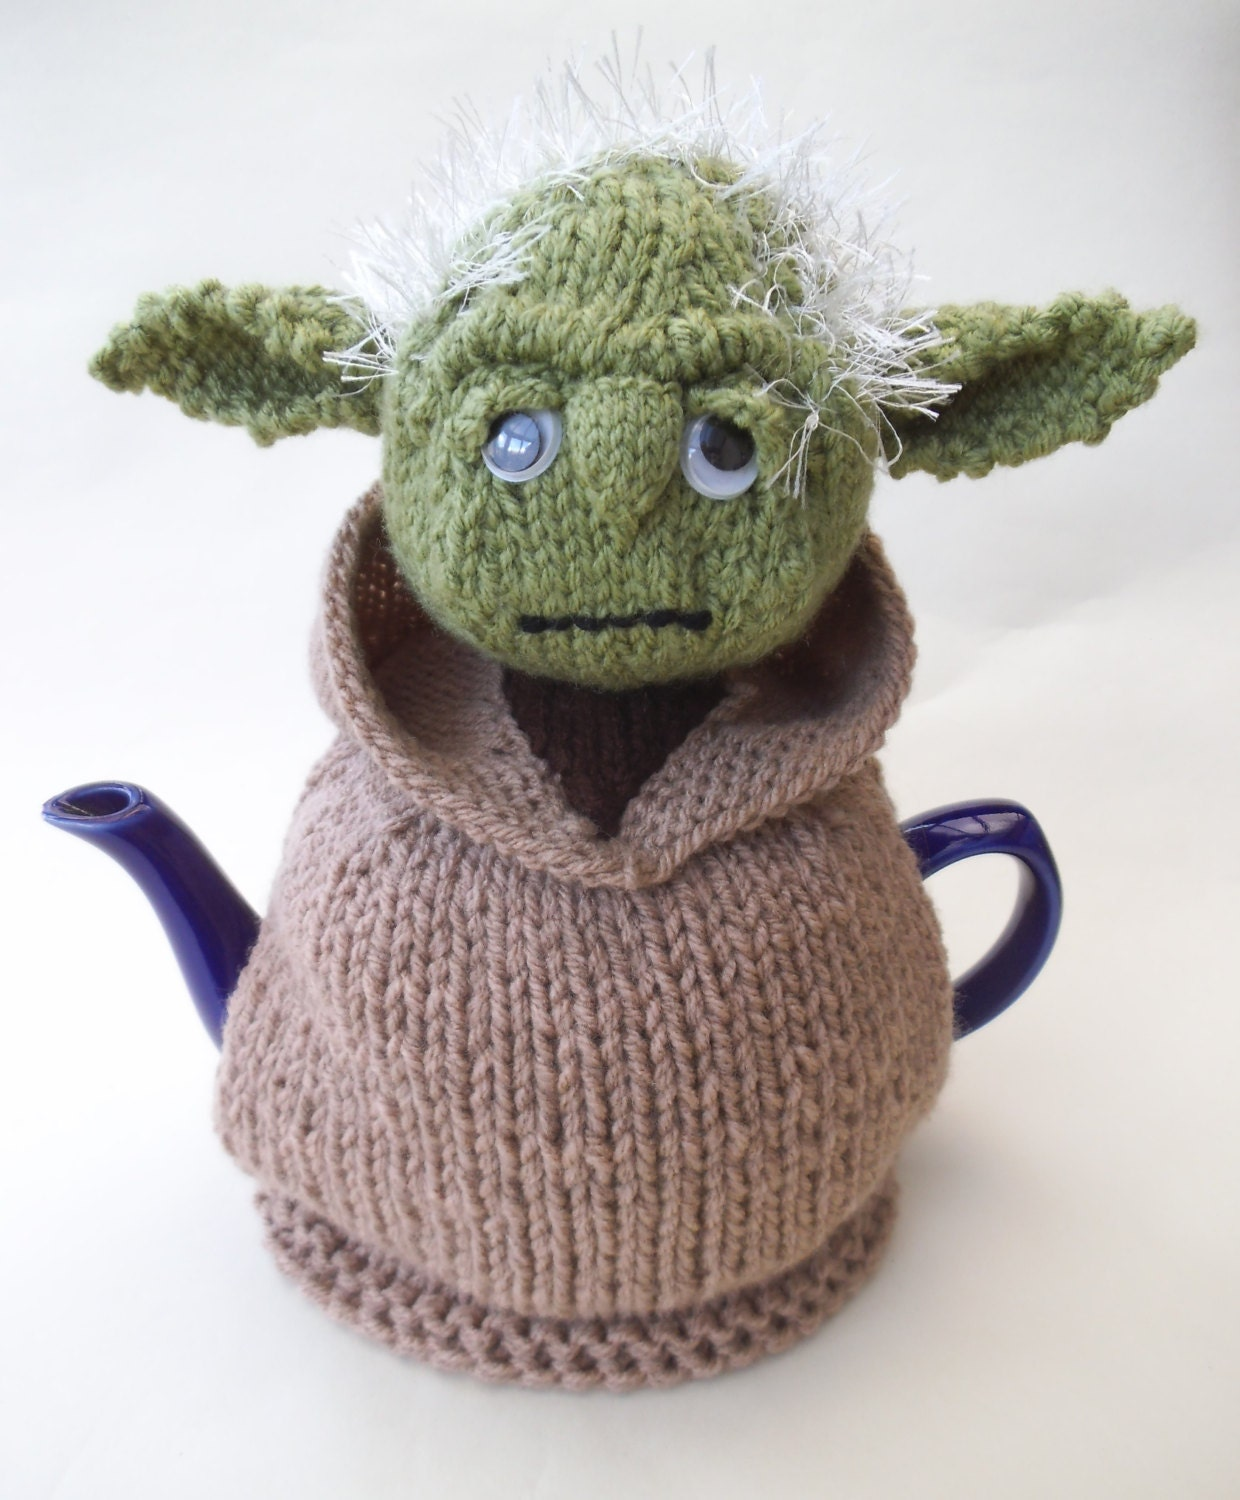 Starwars yoda tea cosy knitting pattern for Tea cosy template